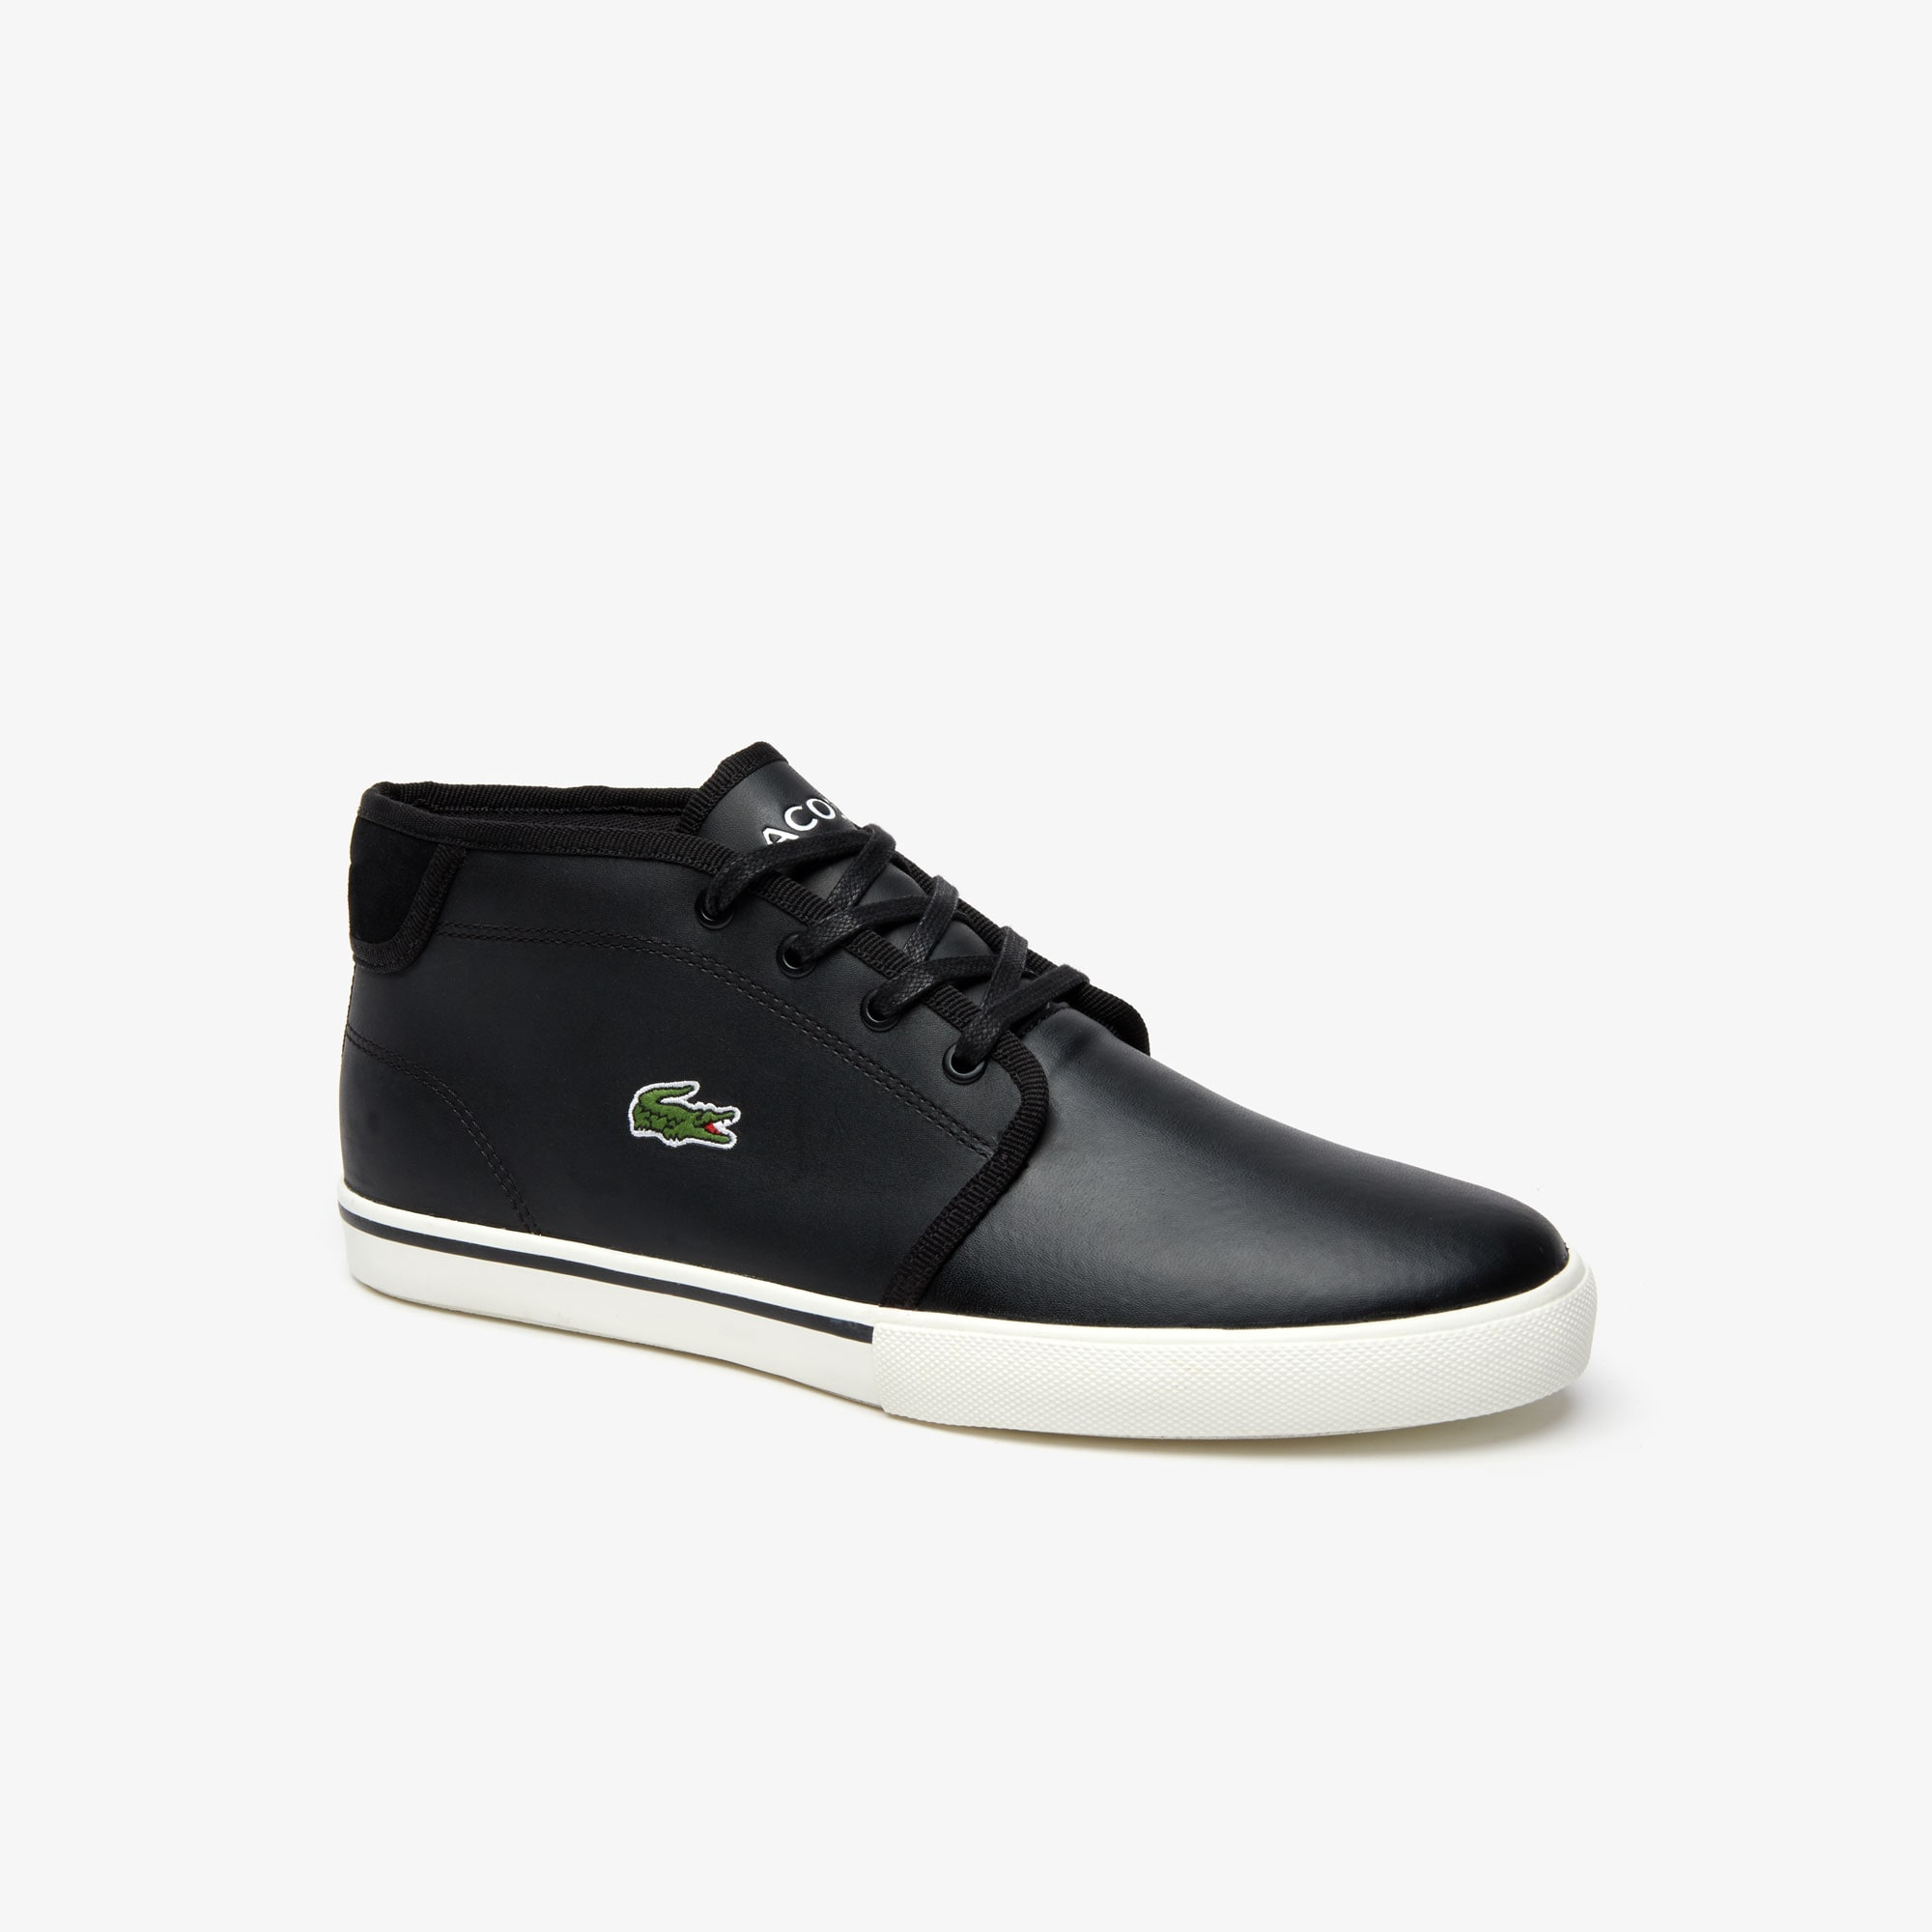 c6ec90e5de87e Men's Shoes | Shoes for Men | LACOSTE